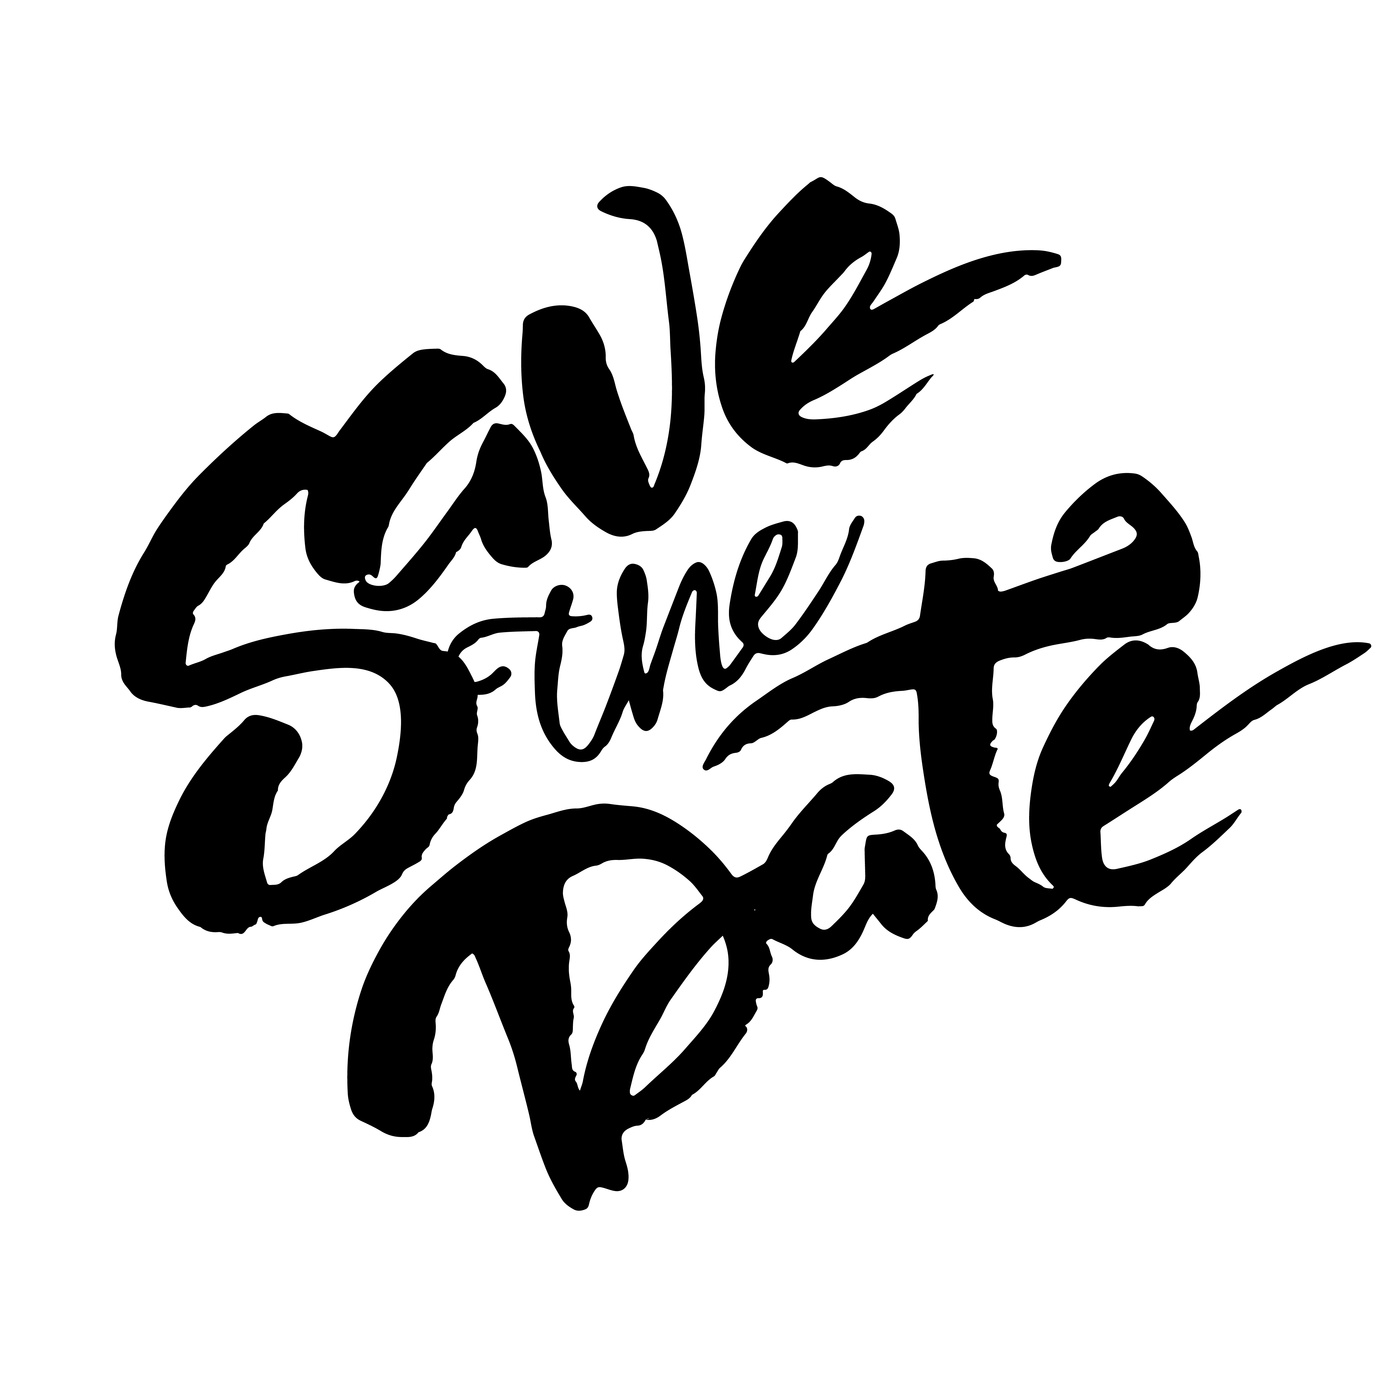 'Save the date' phrase for wedding invitation cards. Brush hand painted with black ink.